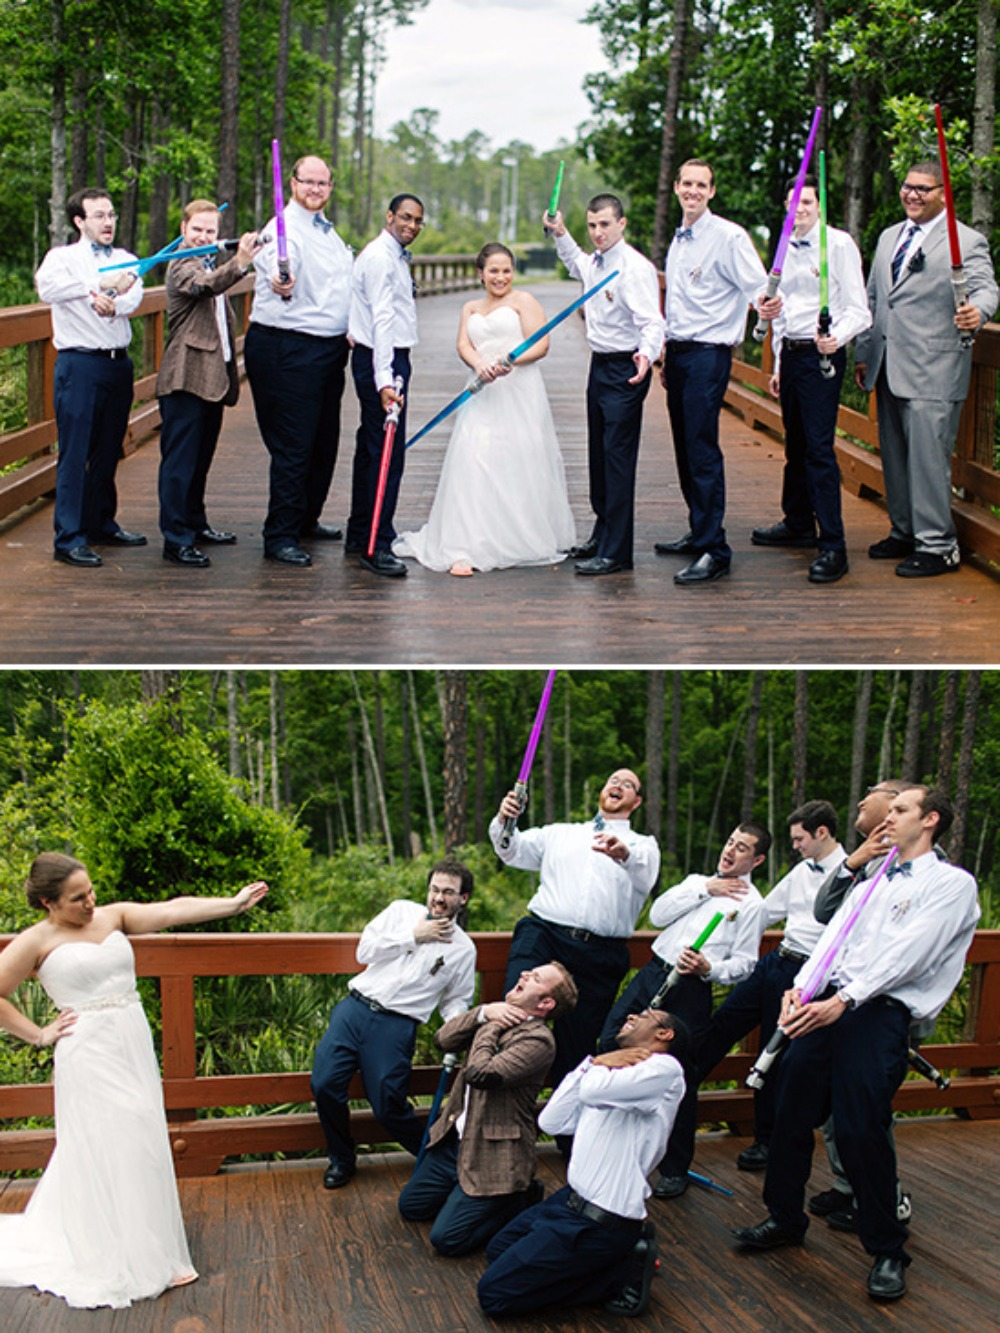 Star Wars Wedding.Trending How To Have A Star Wars Wedding Yes There Will